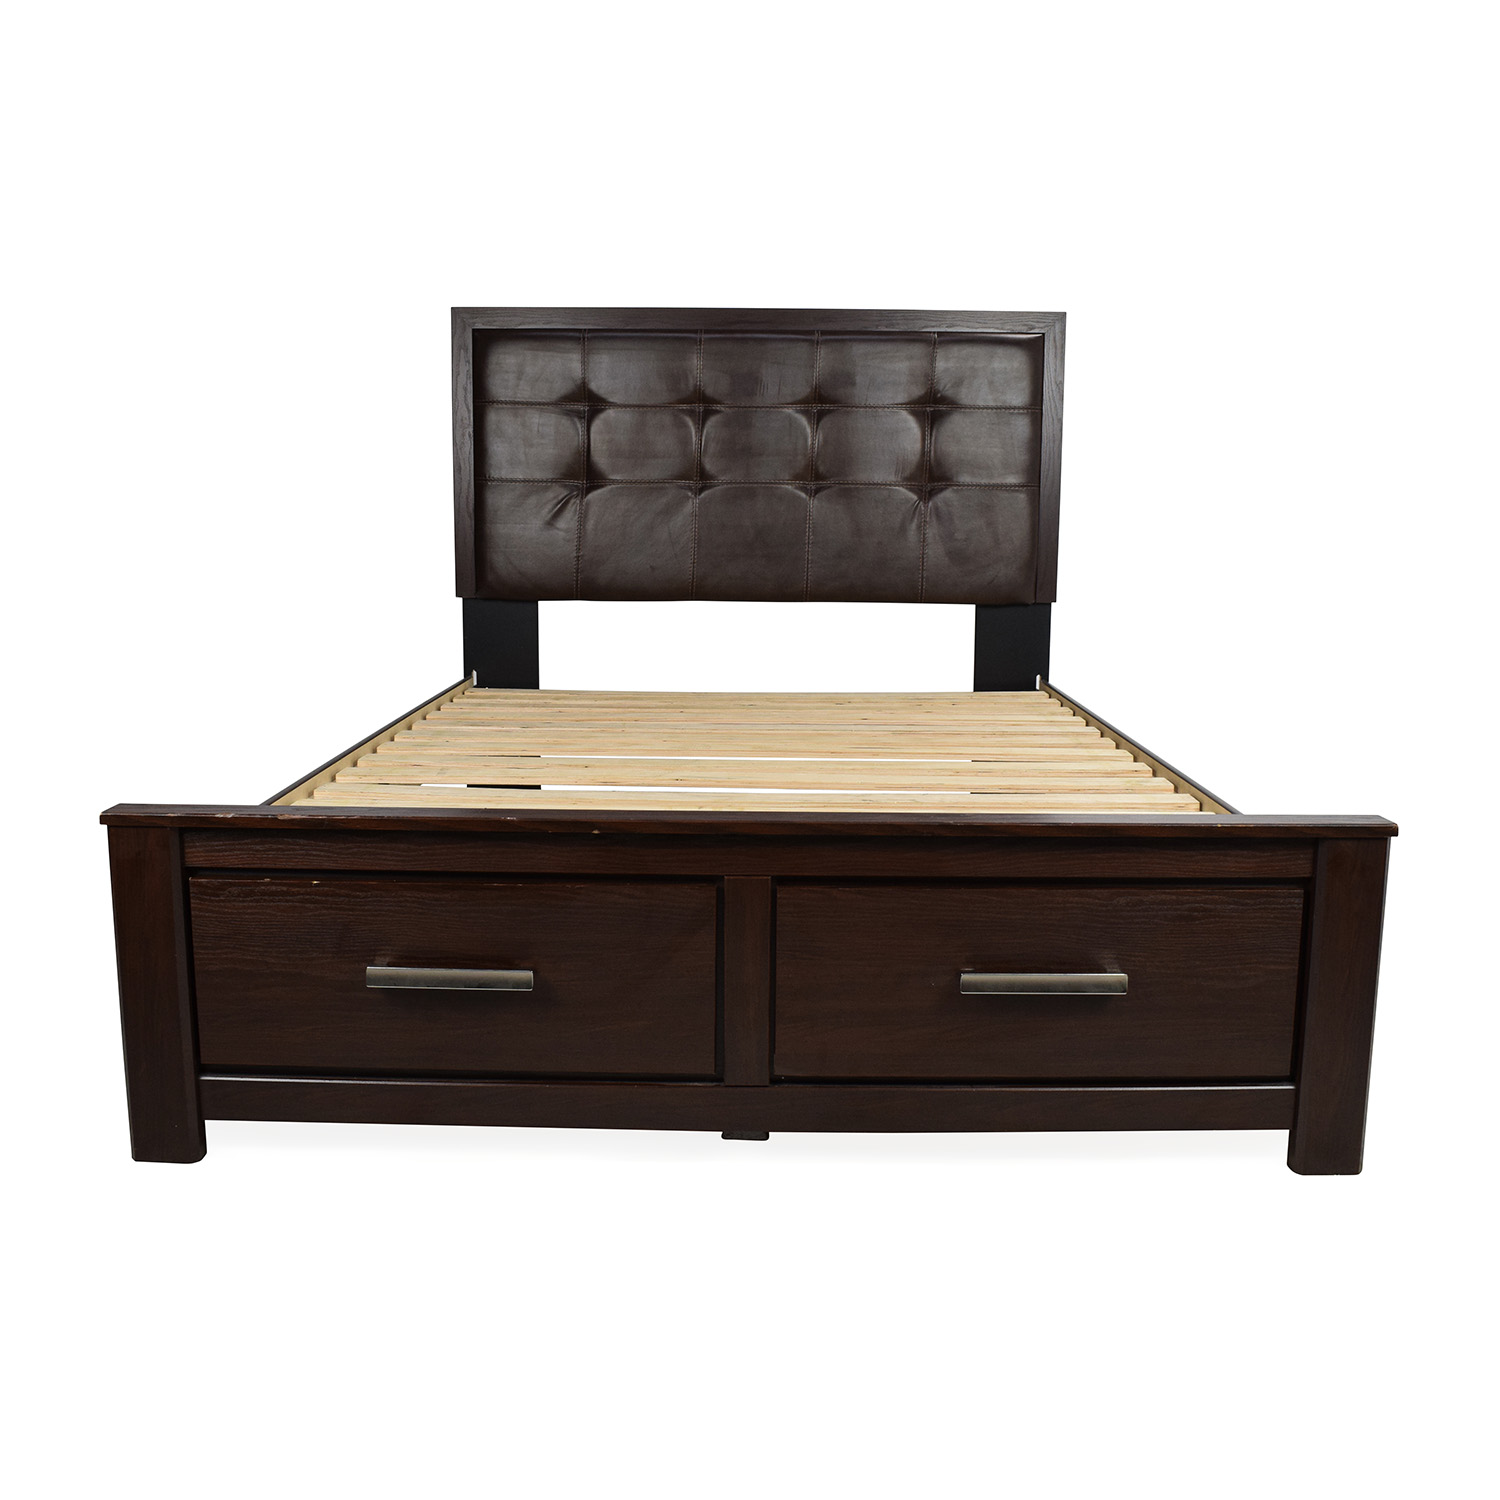 57 Off Ashley Furniture Ashley Furniture Aleydis Queen Storage